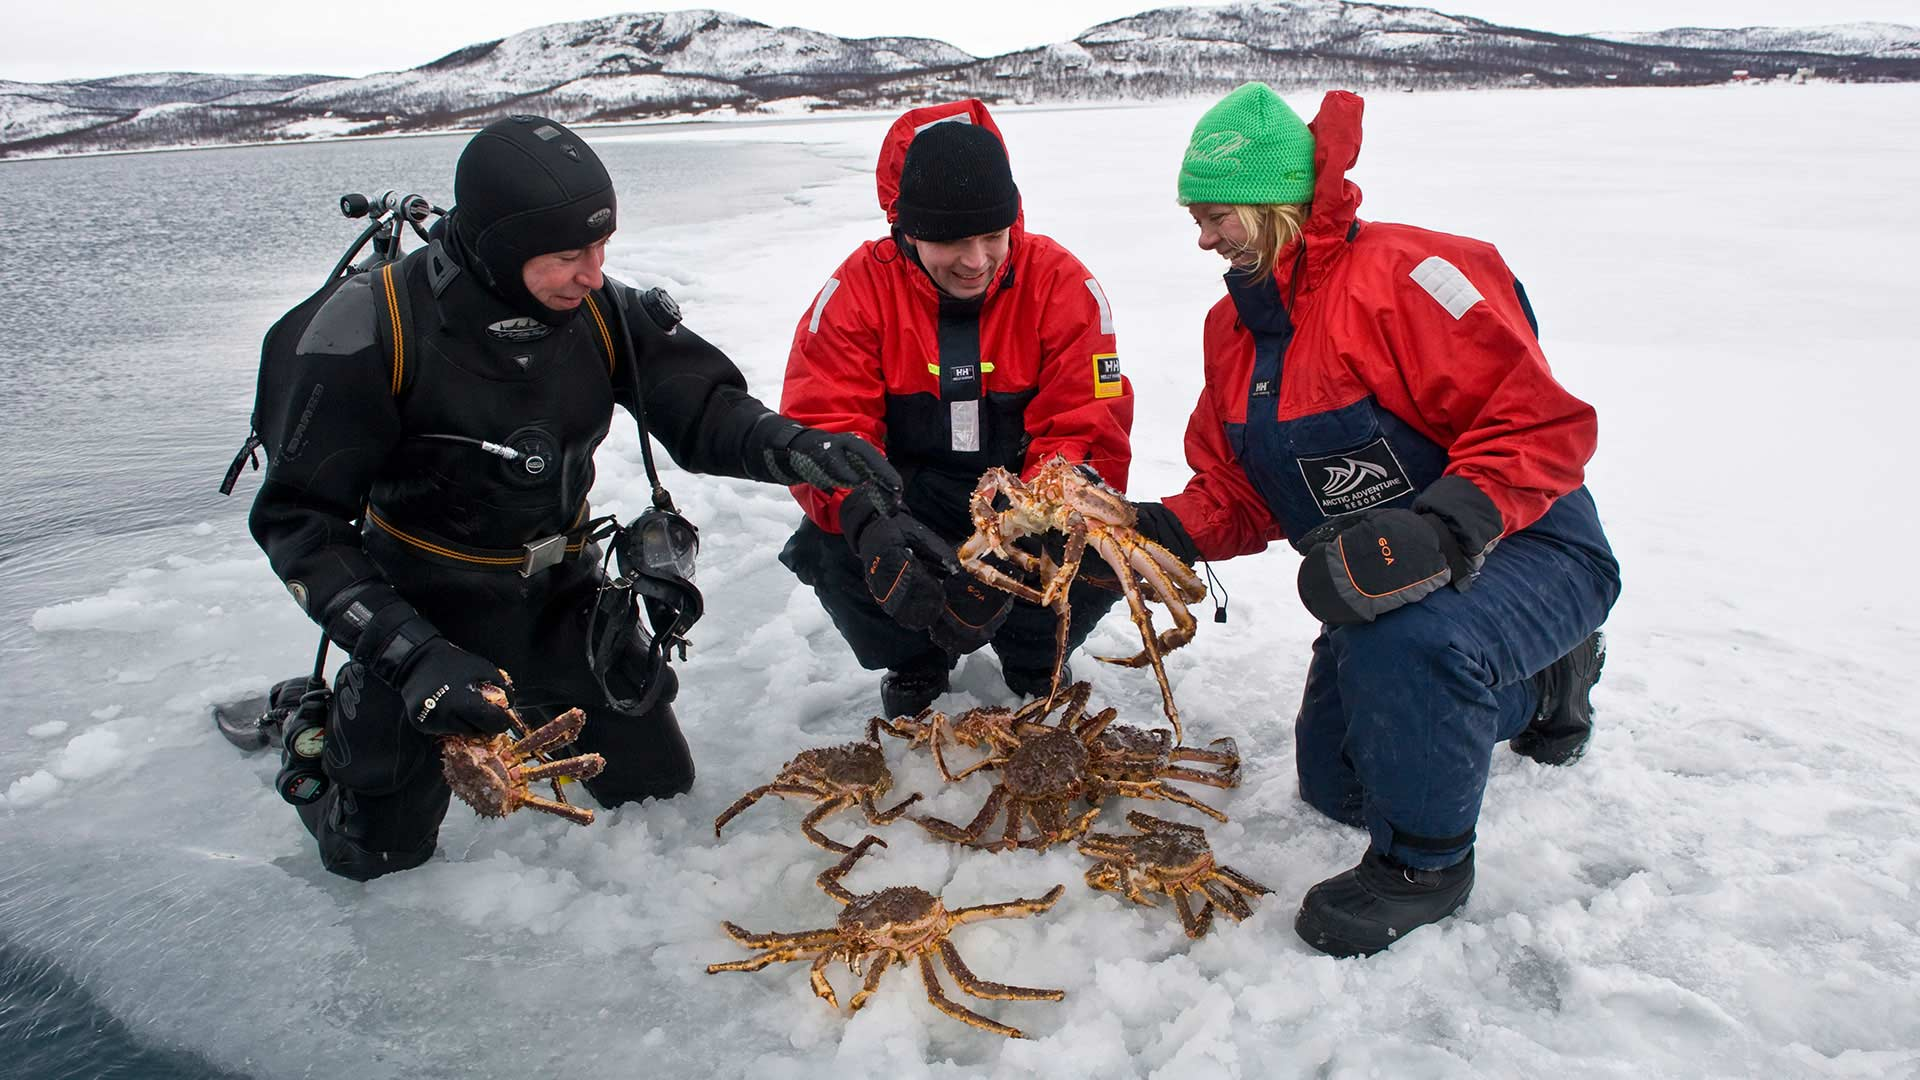 King Crab Safari in Kirkenes, Norway - Photo: visitnorway.com/Terje Rakke